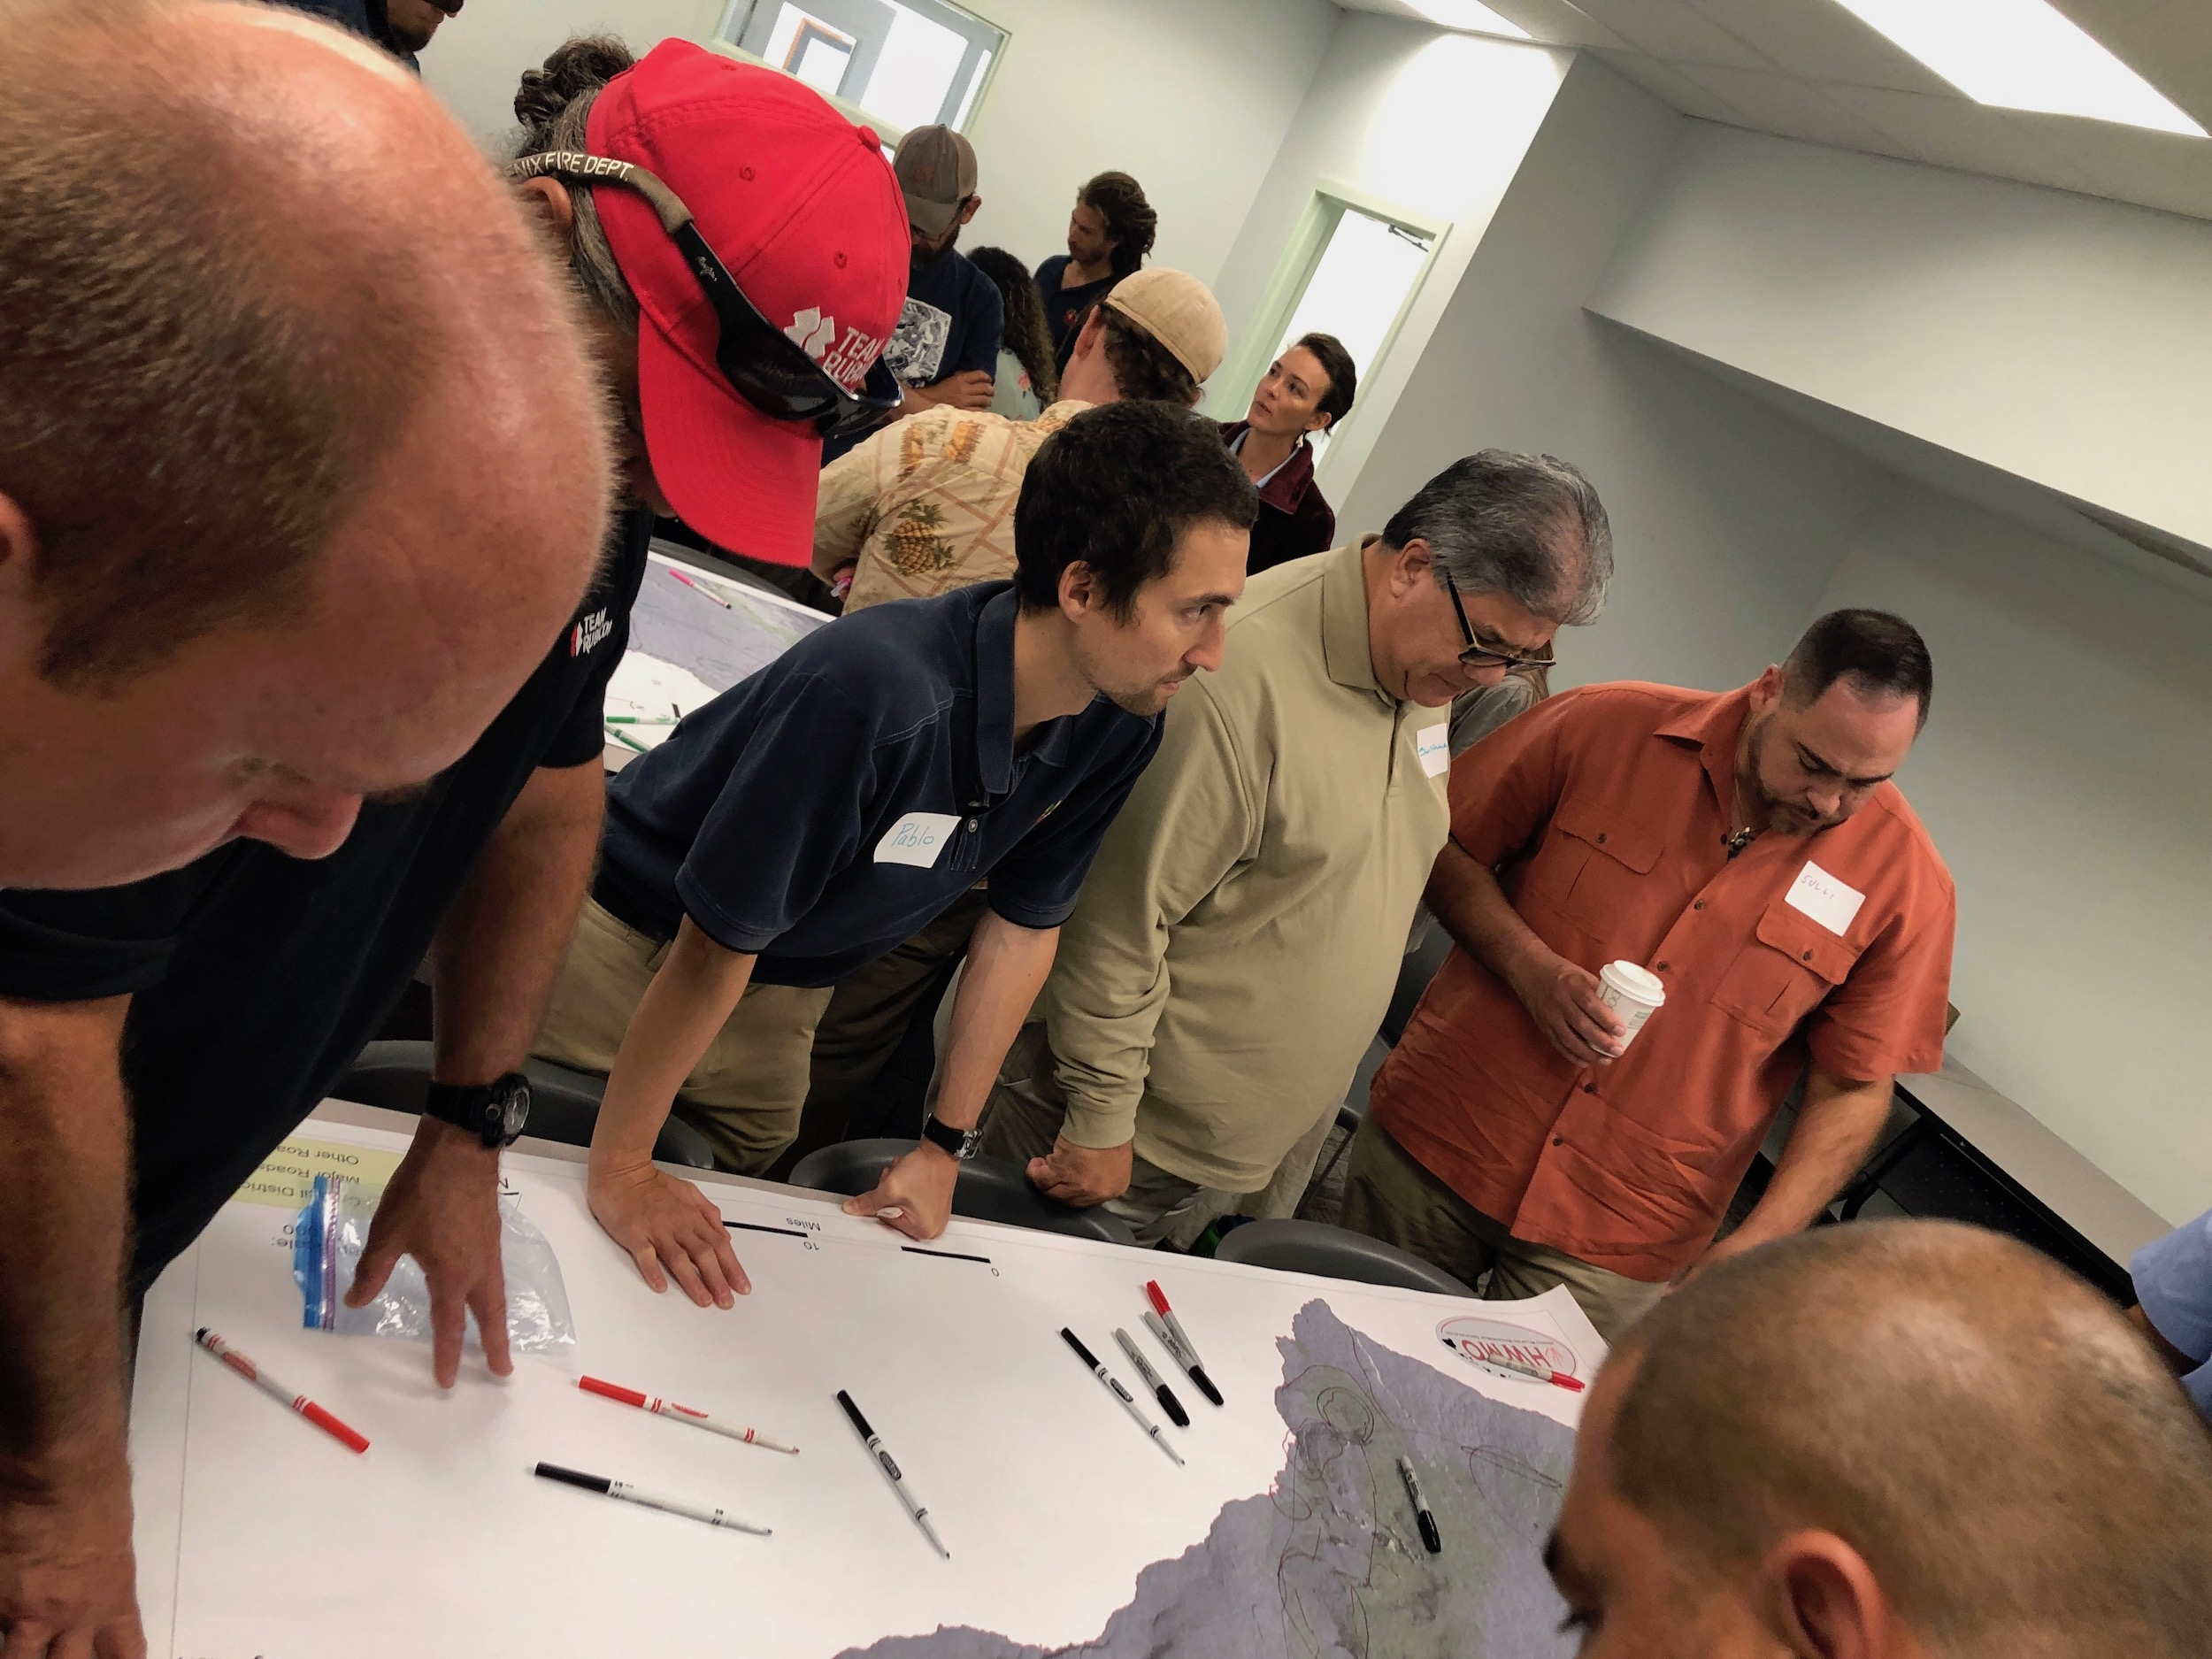 Hawaii Island Hilo Vegetative Fuels Management Collaborative Action Planning Workshop_2_22_2019_13.jpg